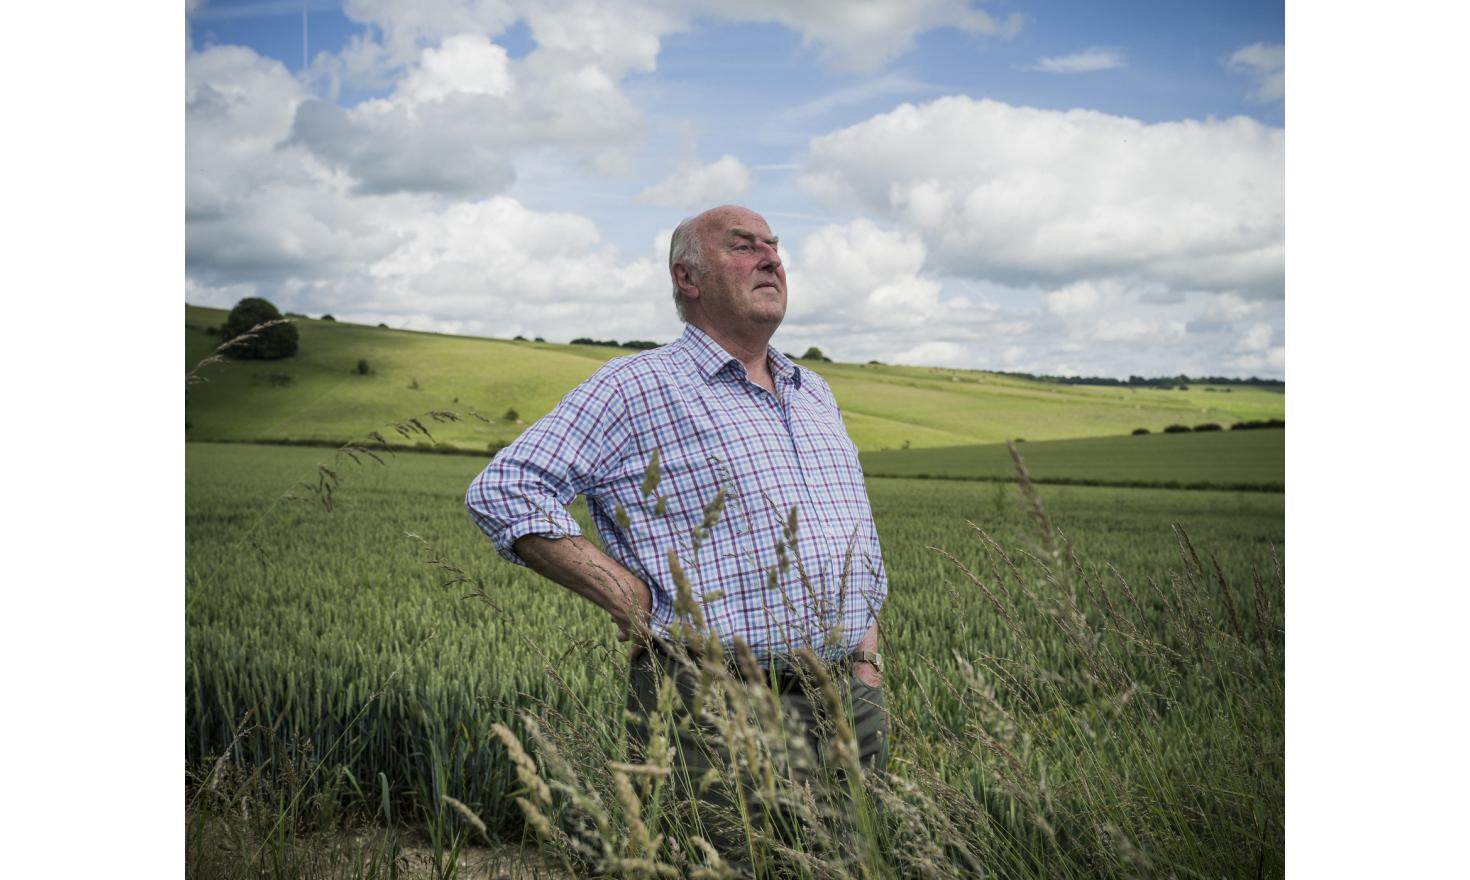 Robert Lawton, standing in the fields that surround his 1800 hectares farm near Marlborough in Wiltshire. Lawson voted to leave the European Union, as he is convinced that Britain is better off without all the bureaucracy.